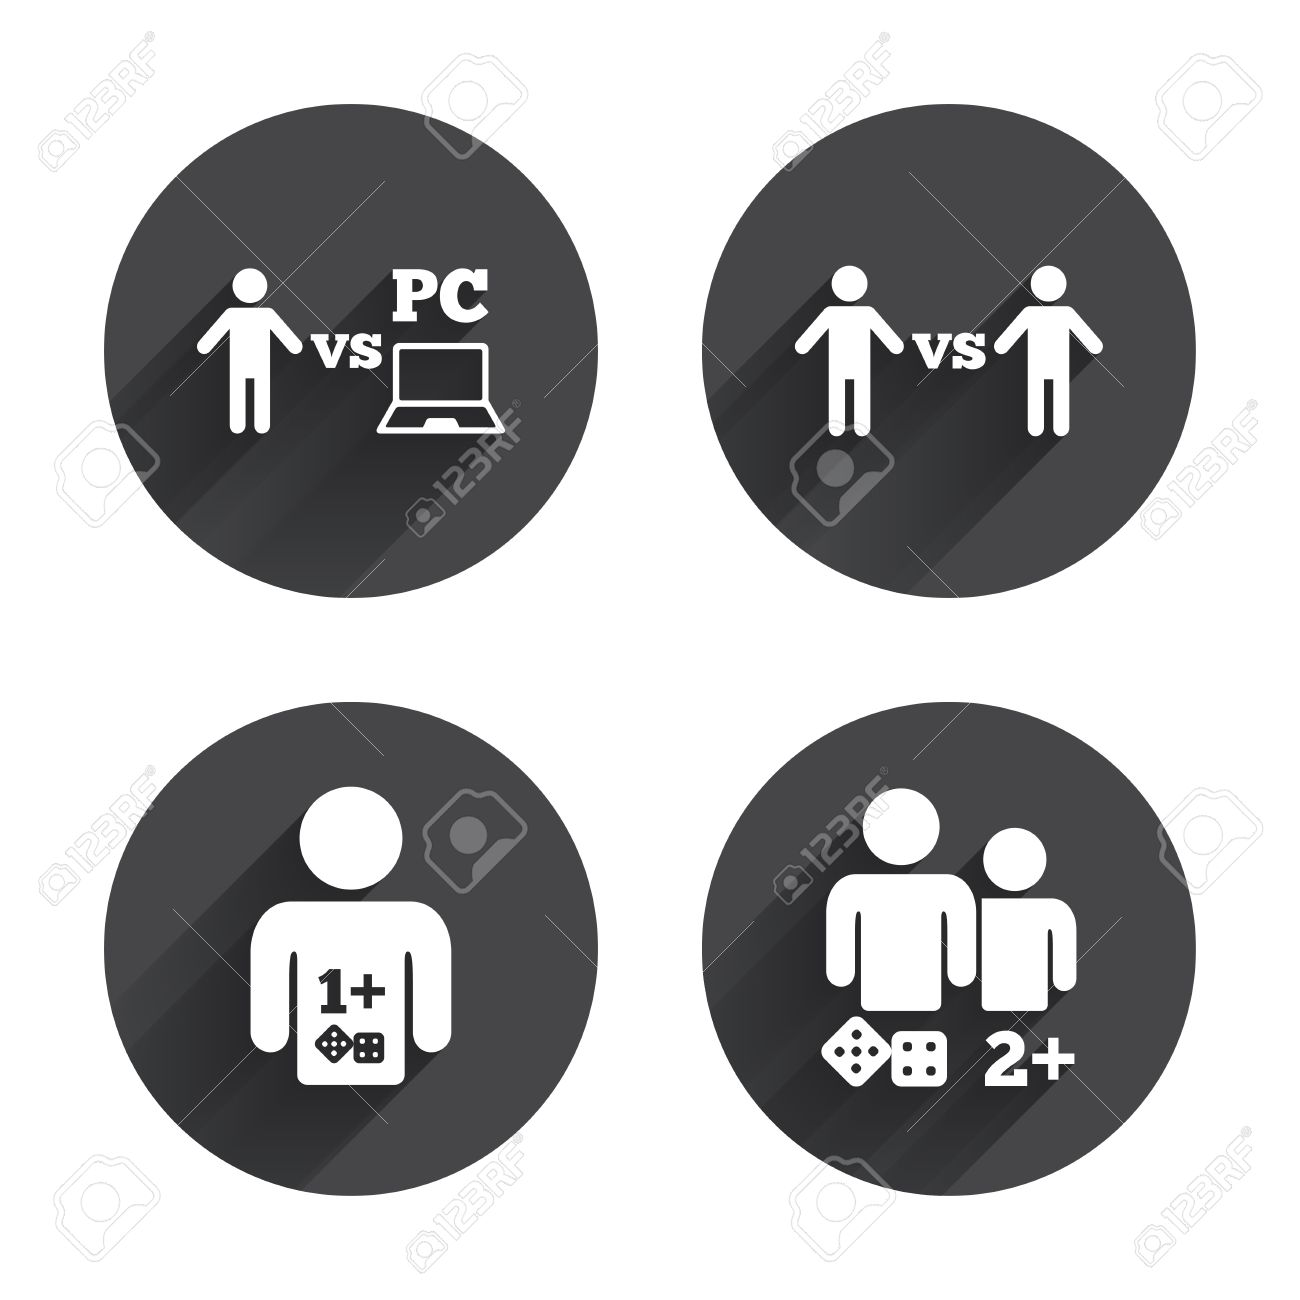 Gamer icons  Board and PC games players signs  Player vs PC symbol